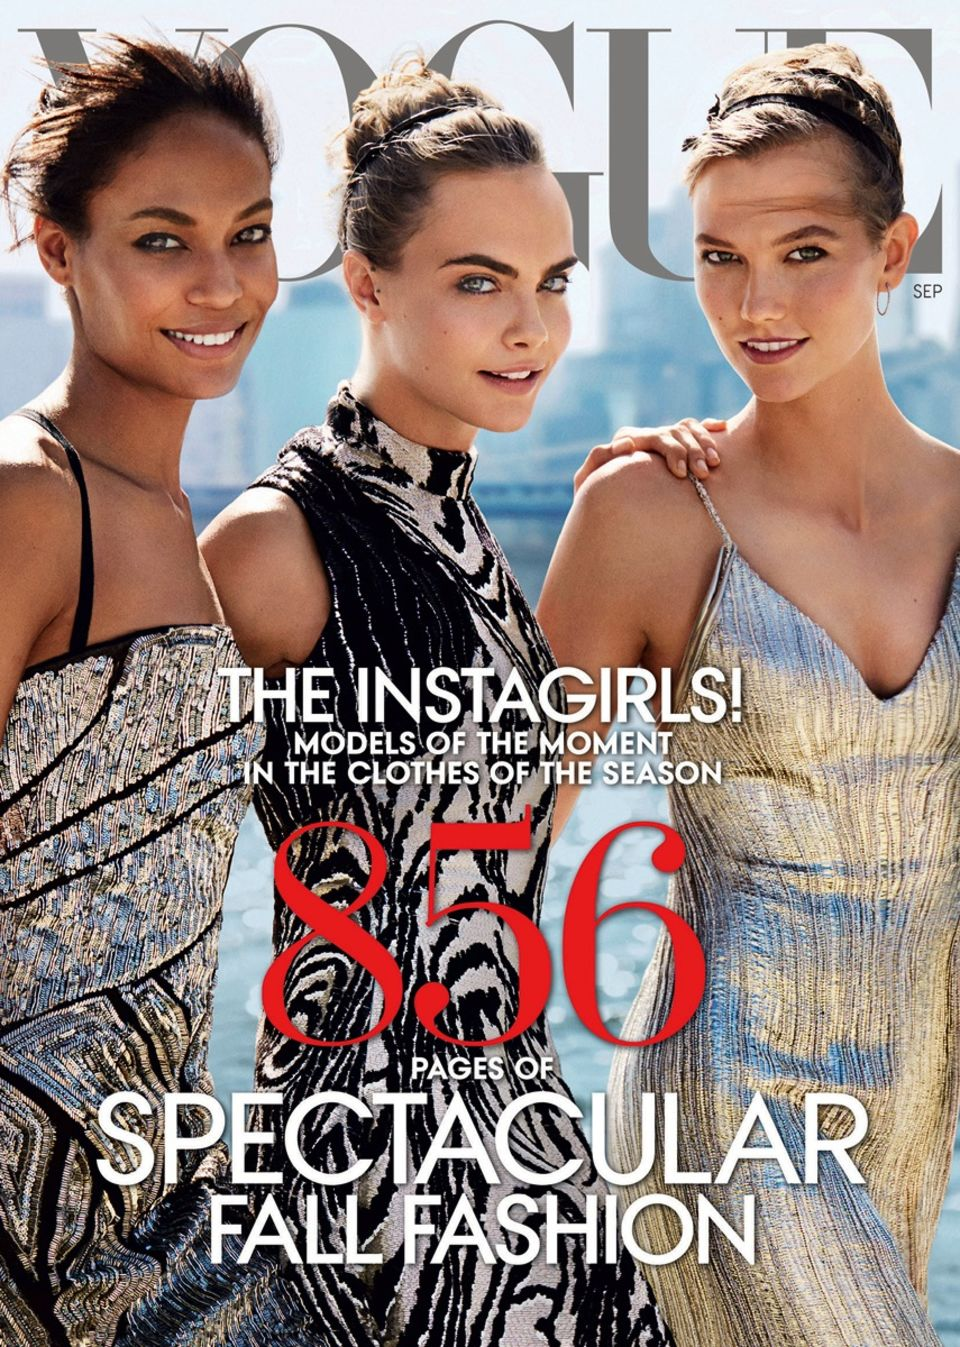 Vogue puts models on its September 2014 Issue